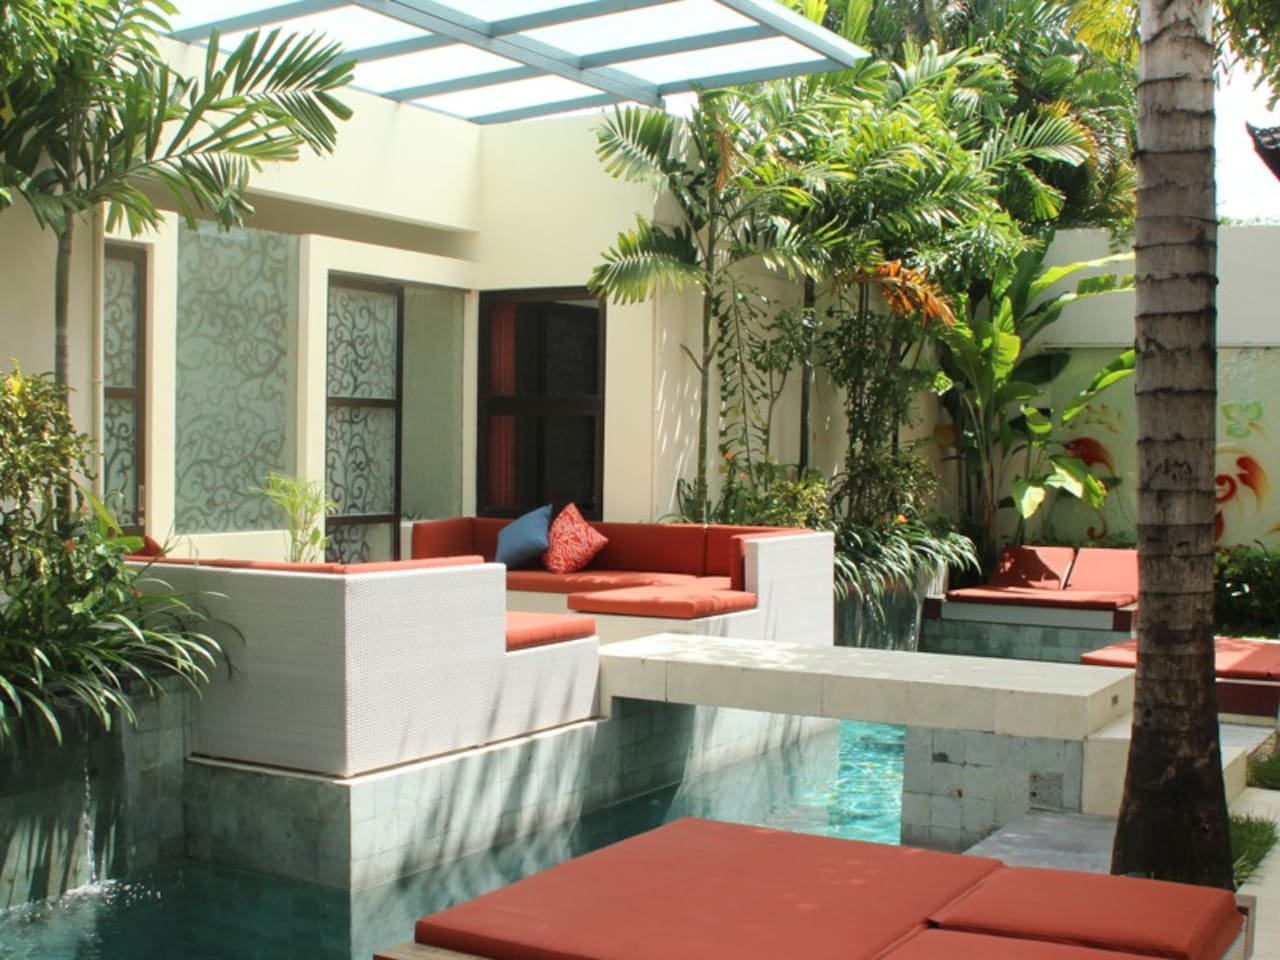 Terrace overlooking swimming pool in charming courtyard.